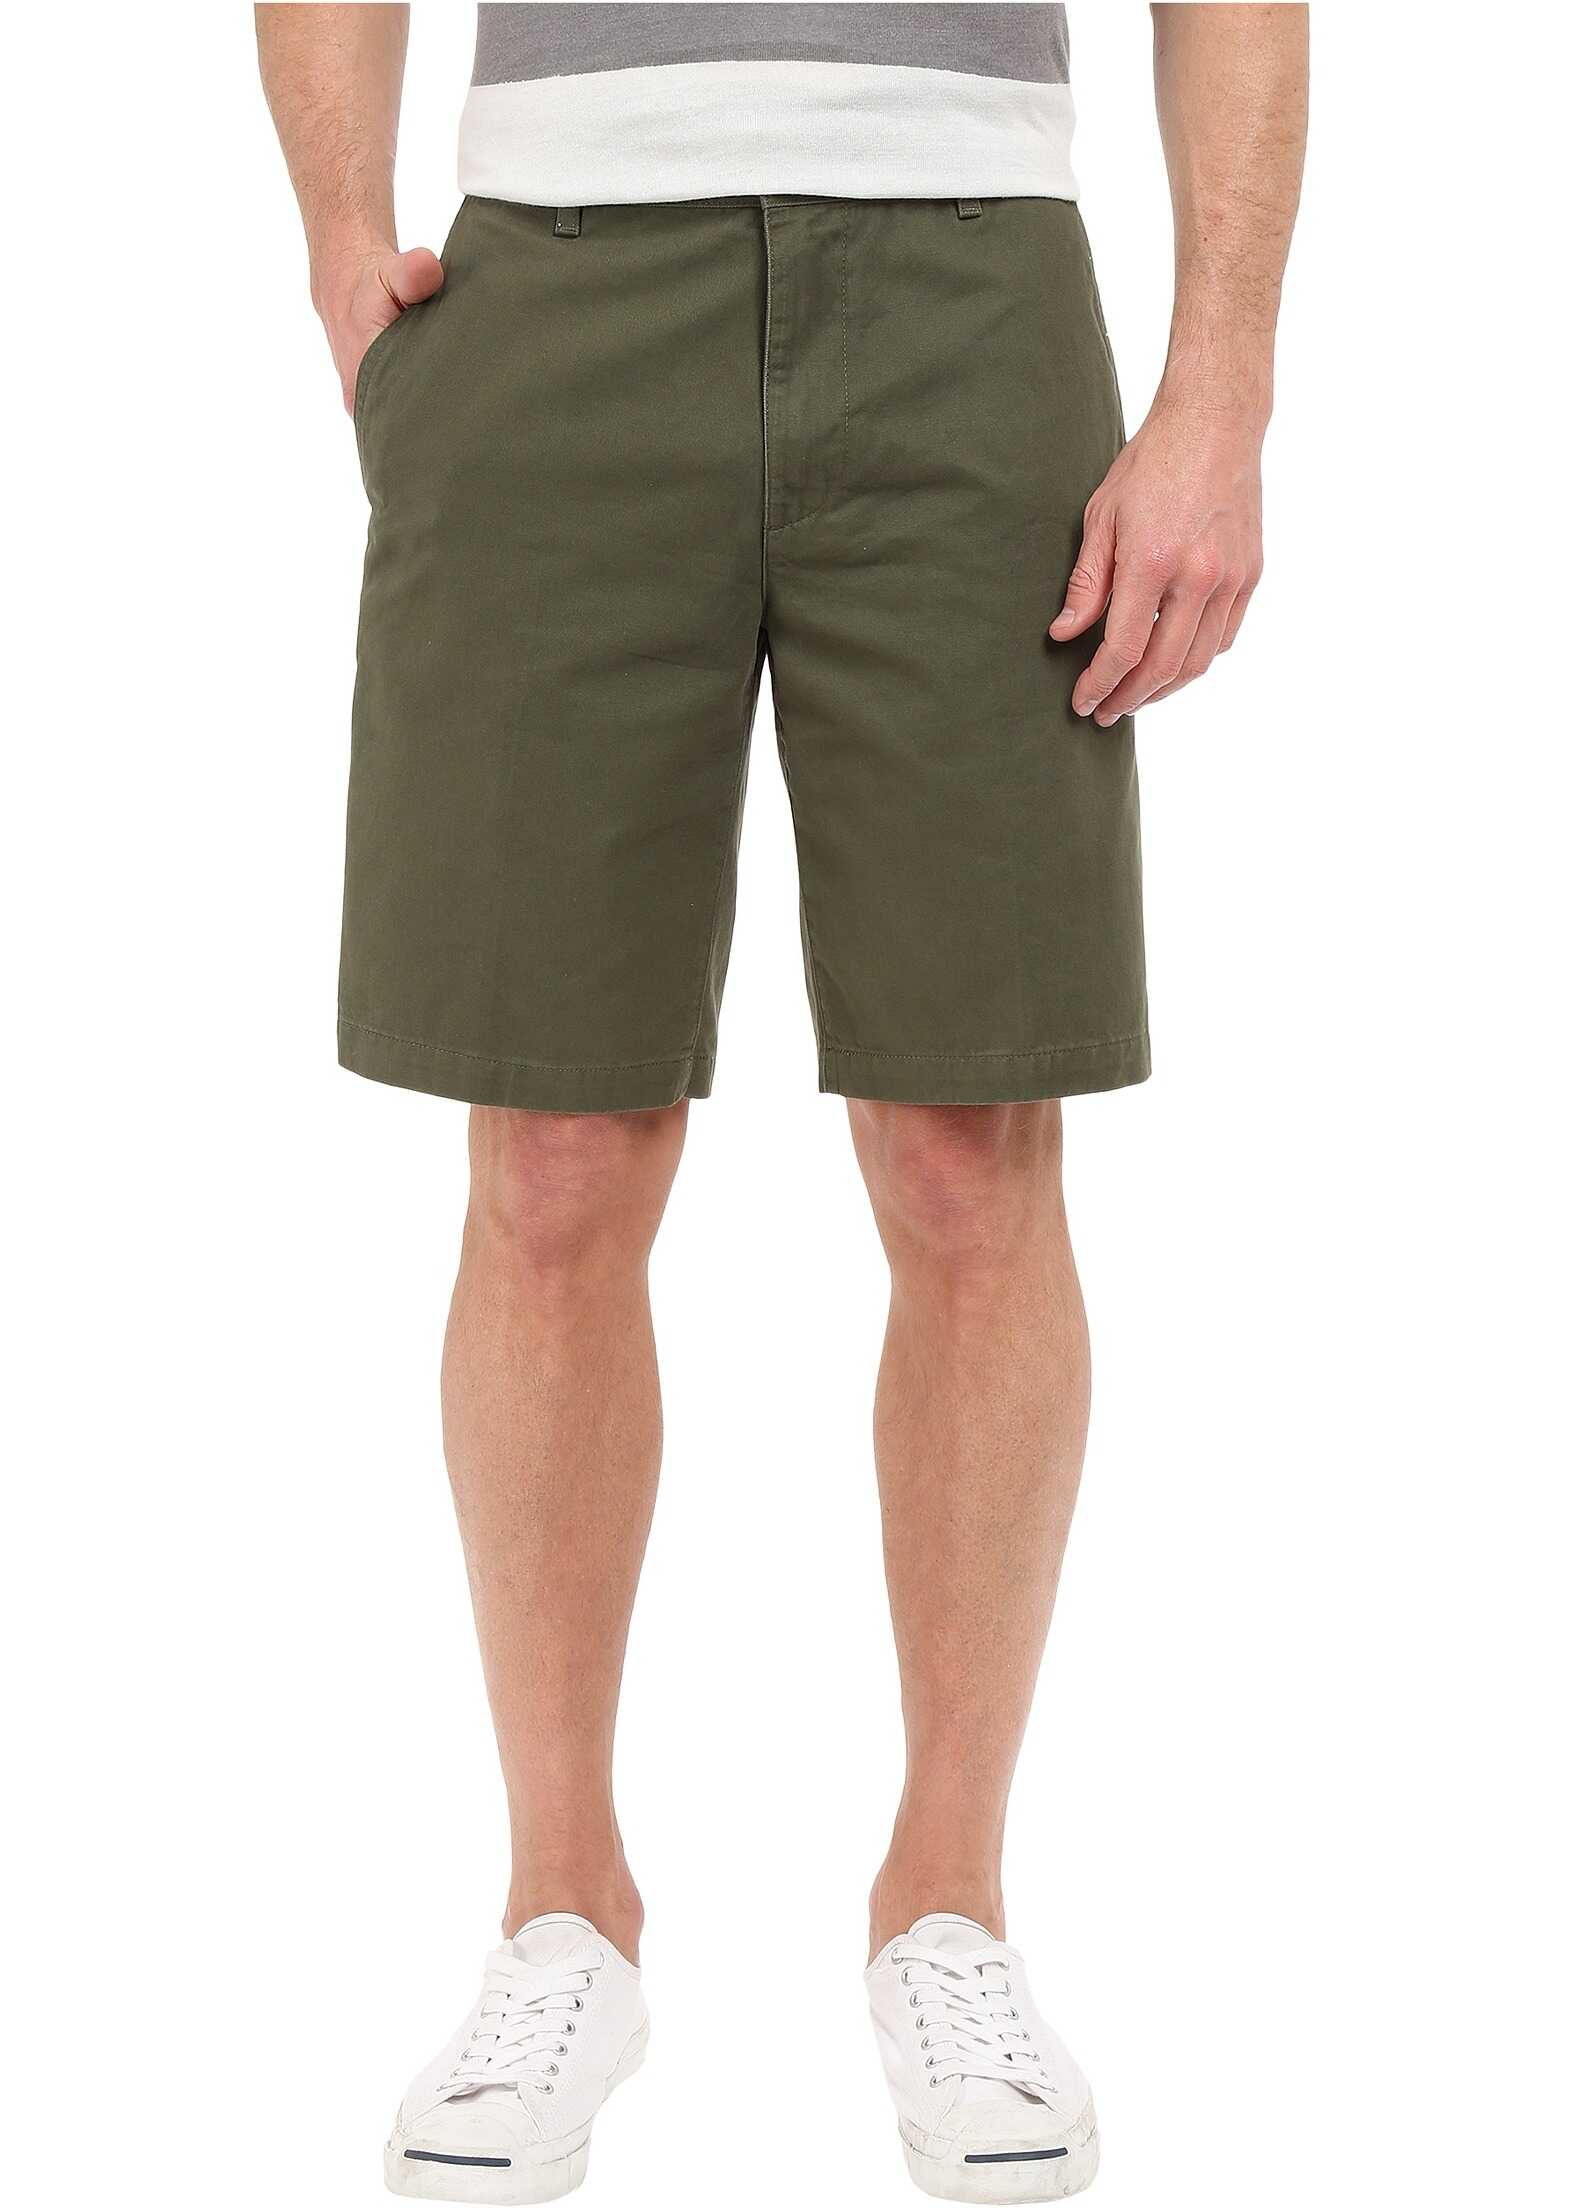 Dockers Perfect Short Classic Fit Flat Front Dockers Olive Stretch